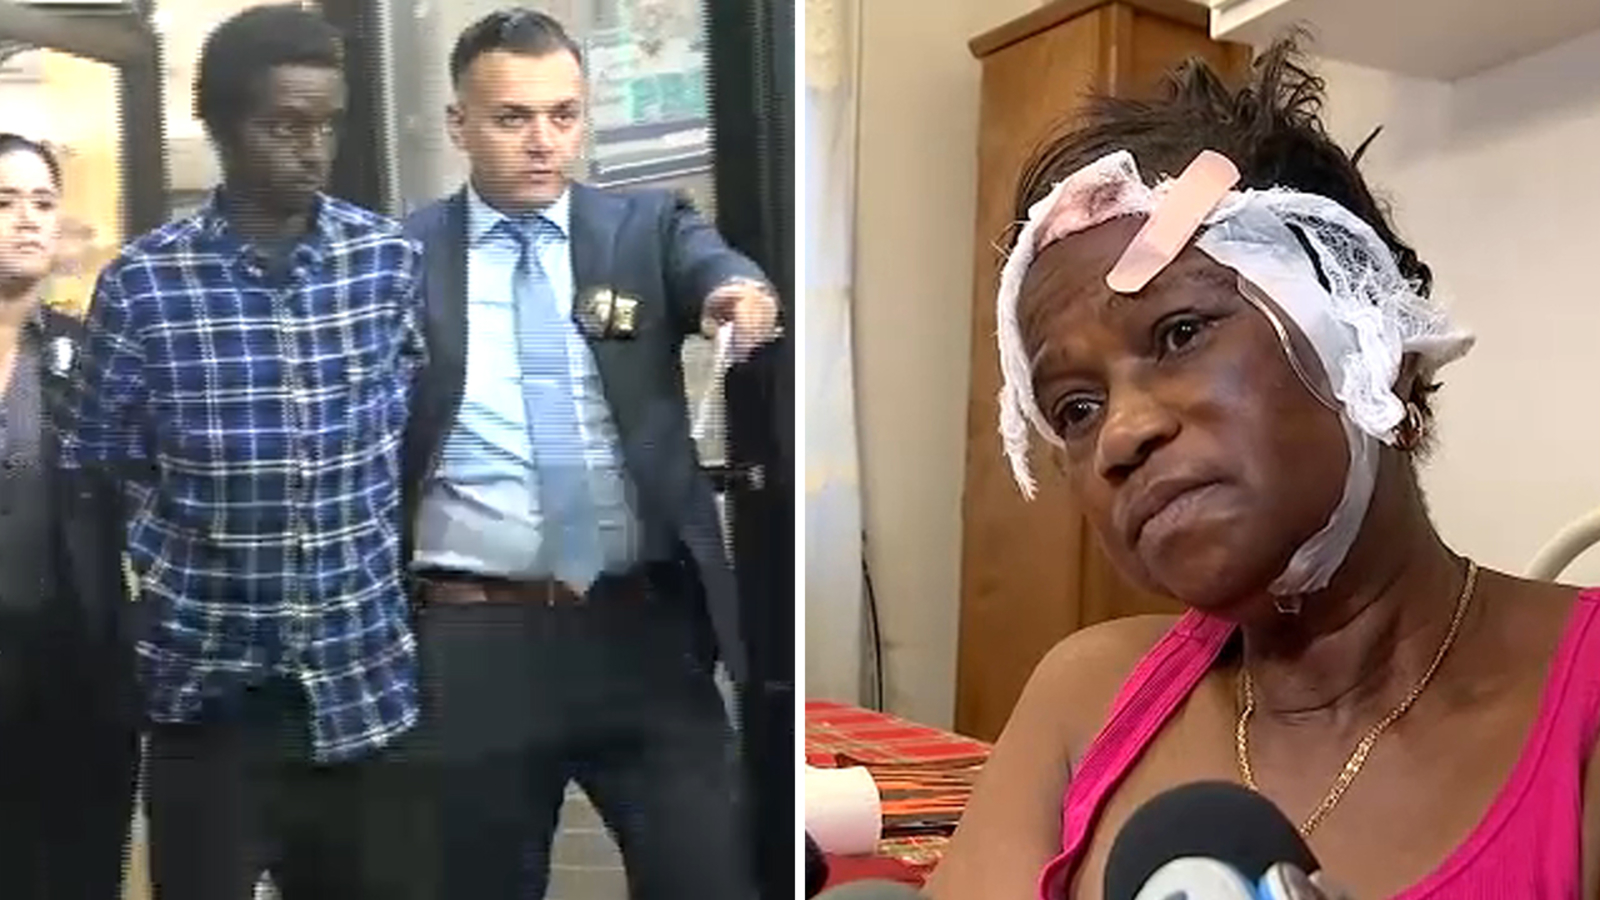 VIDEO: Mayor Backs Woman Arrested After Fighting Cops Who